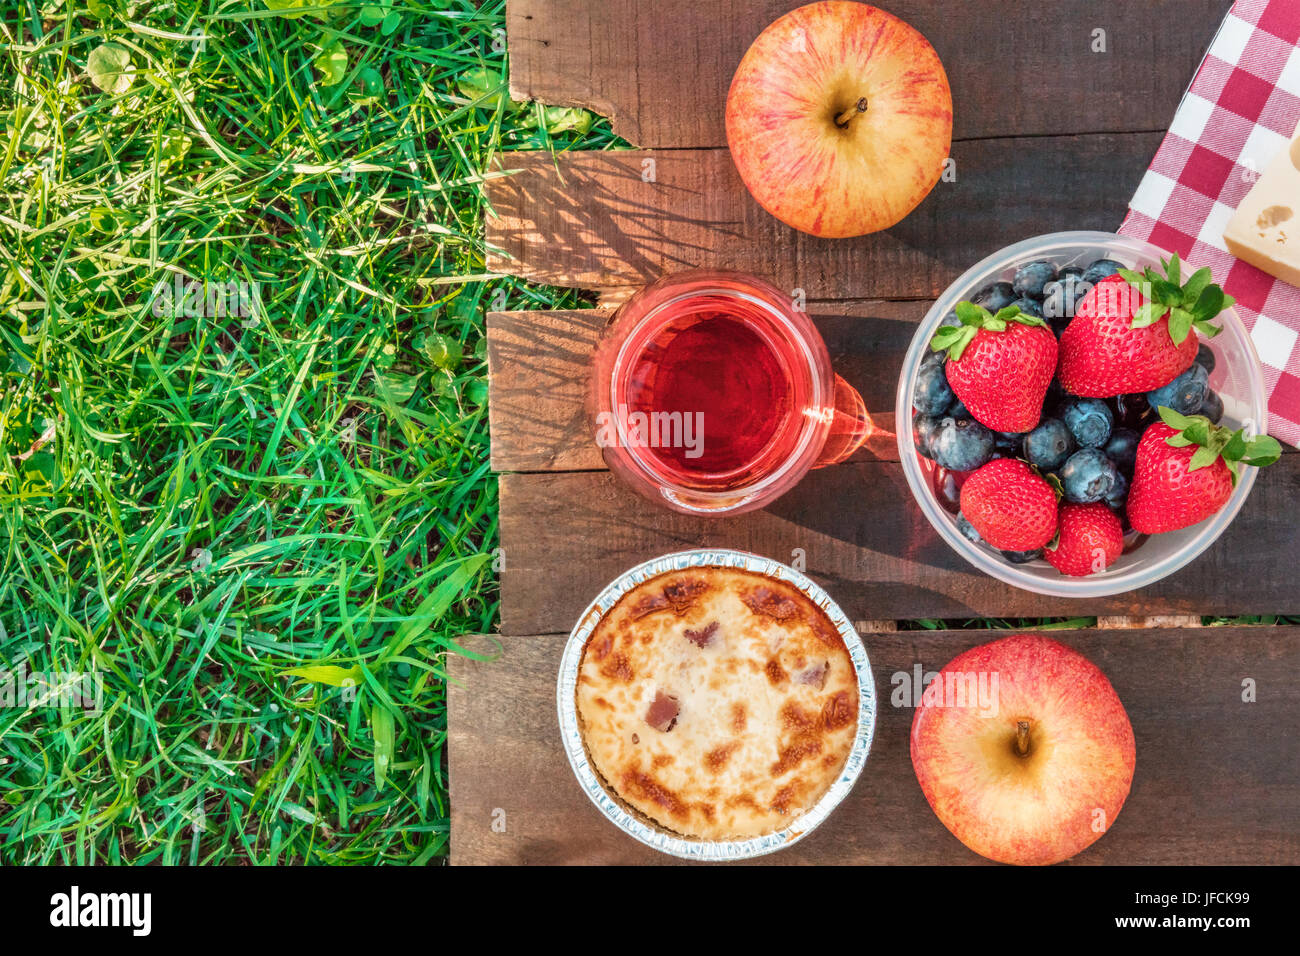 An overhead photo of a picnic with an apple, a glass of rose wine, fresh fruit in a plastic container, and a quiche, - Stock Image